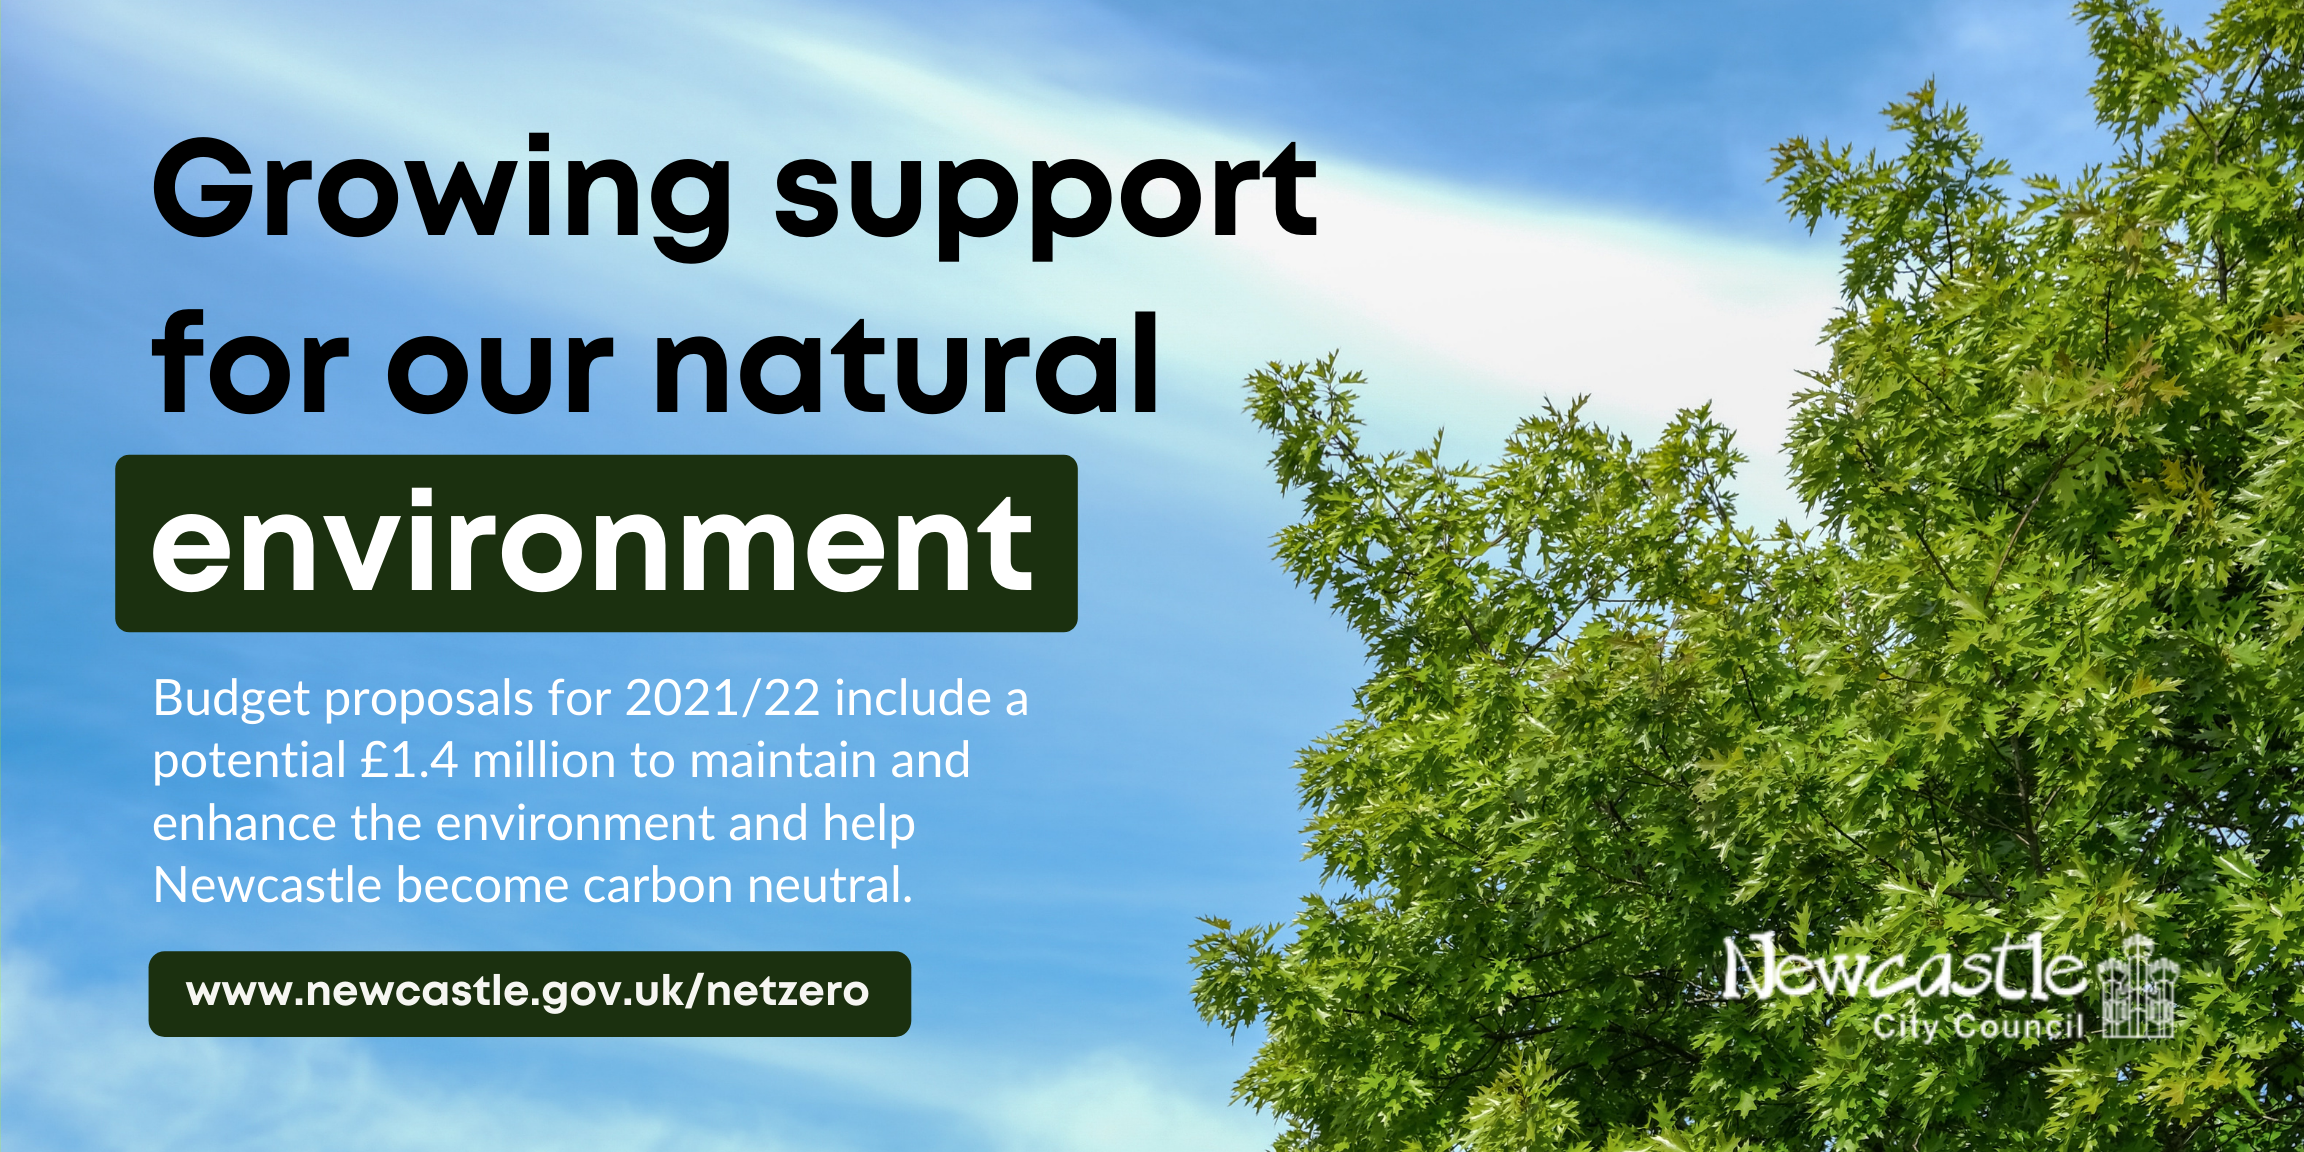 Image: A blue sky and tree foliage. Text: Growing support for our natural environment - Budget proposals for 2021/22 include a potential £1.4 million to maintain and enhance the environment and help Newcastle become carbon neutral.